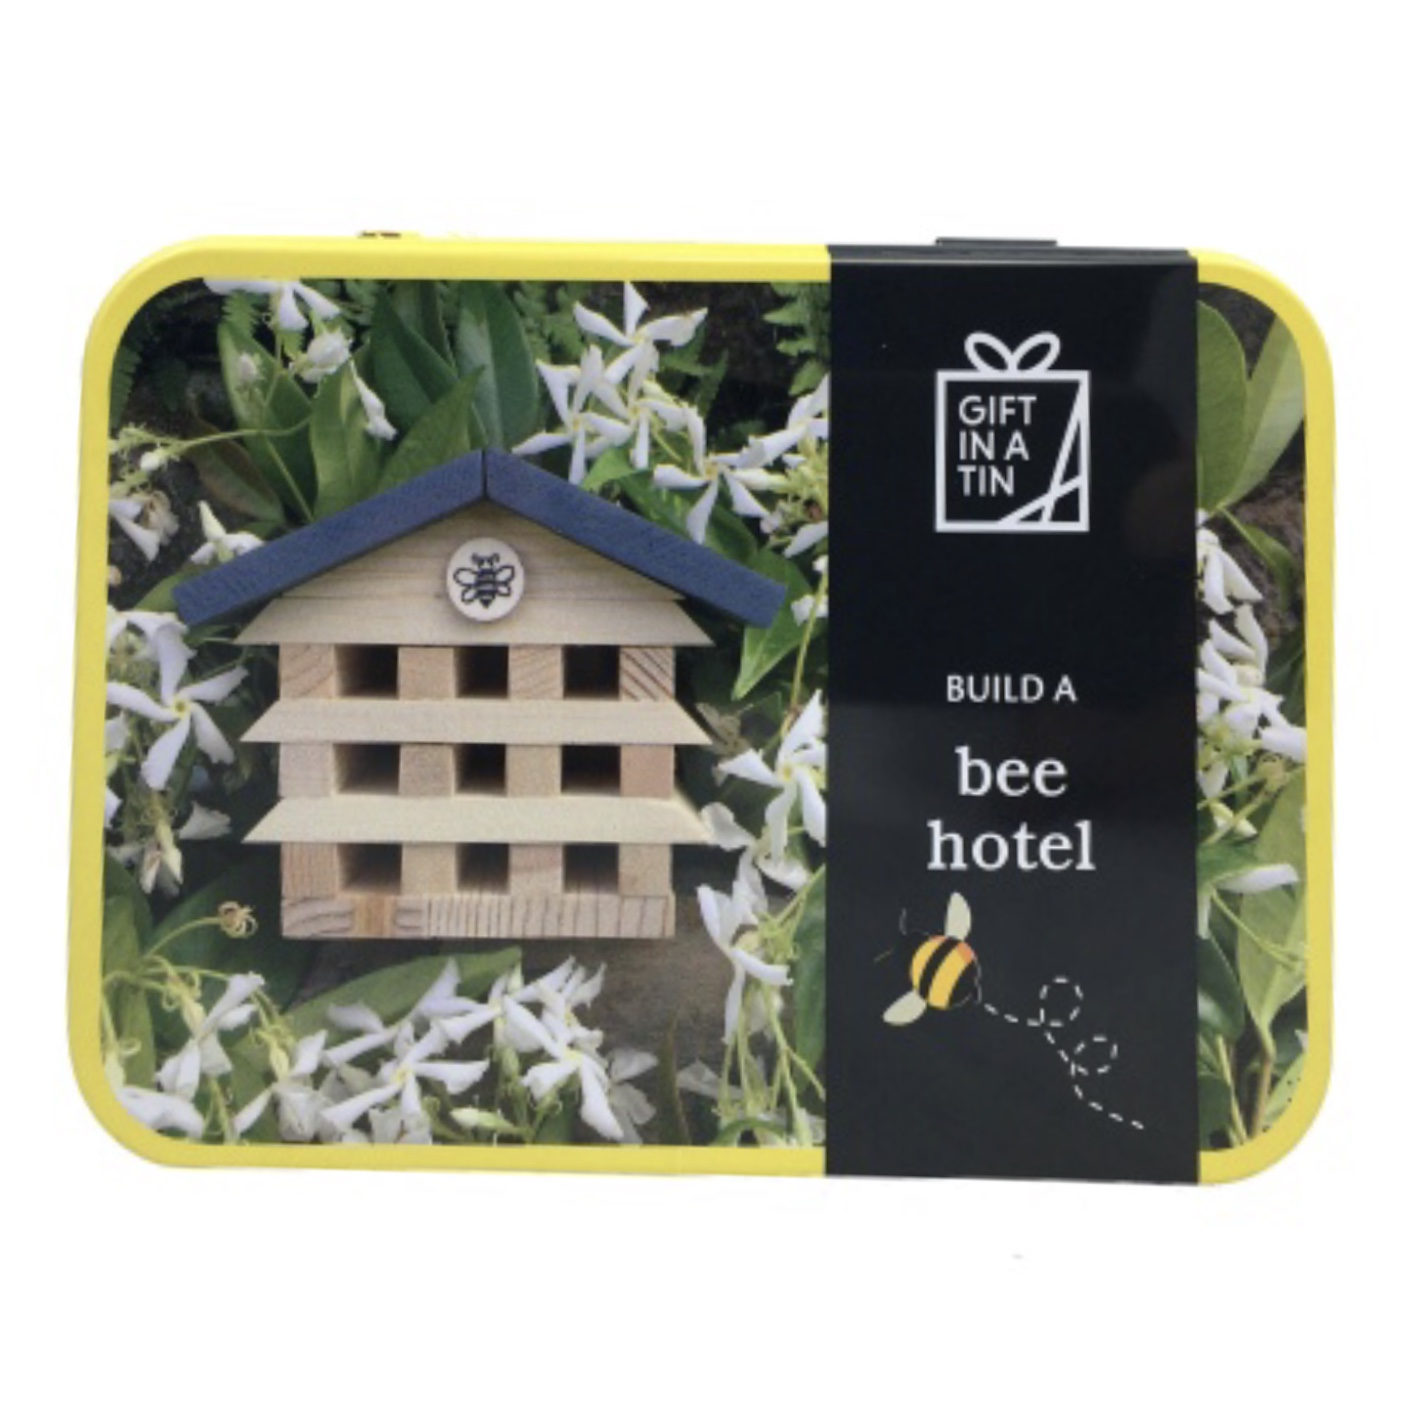 'Build a Bee Hotel' Gift in a Tin